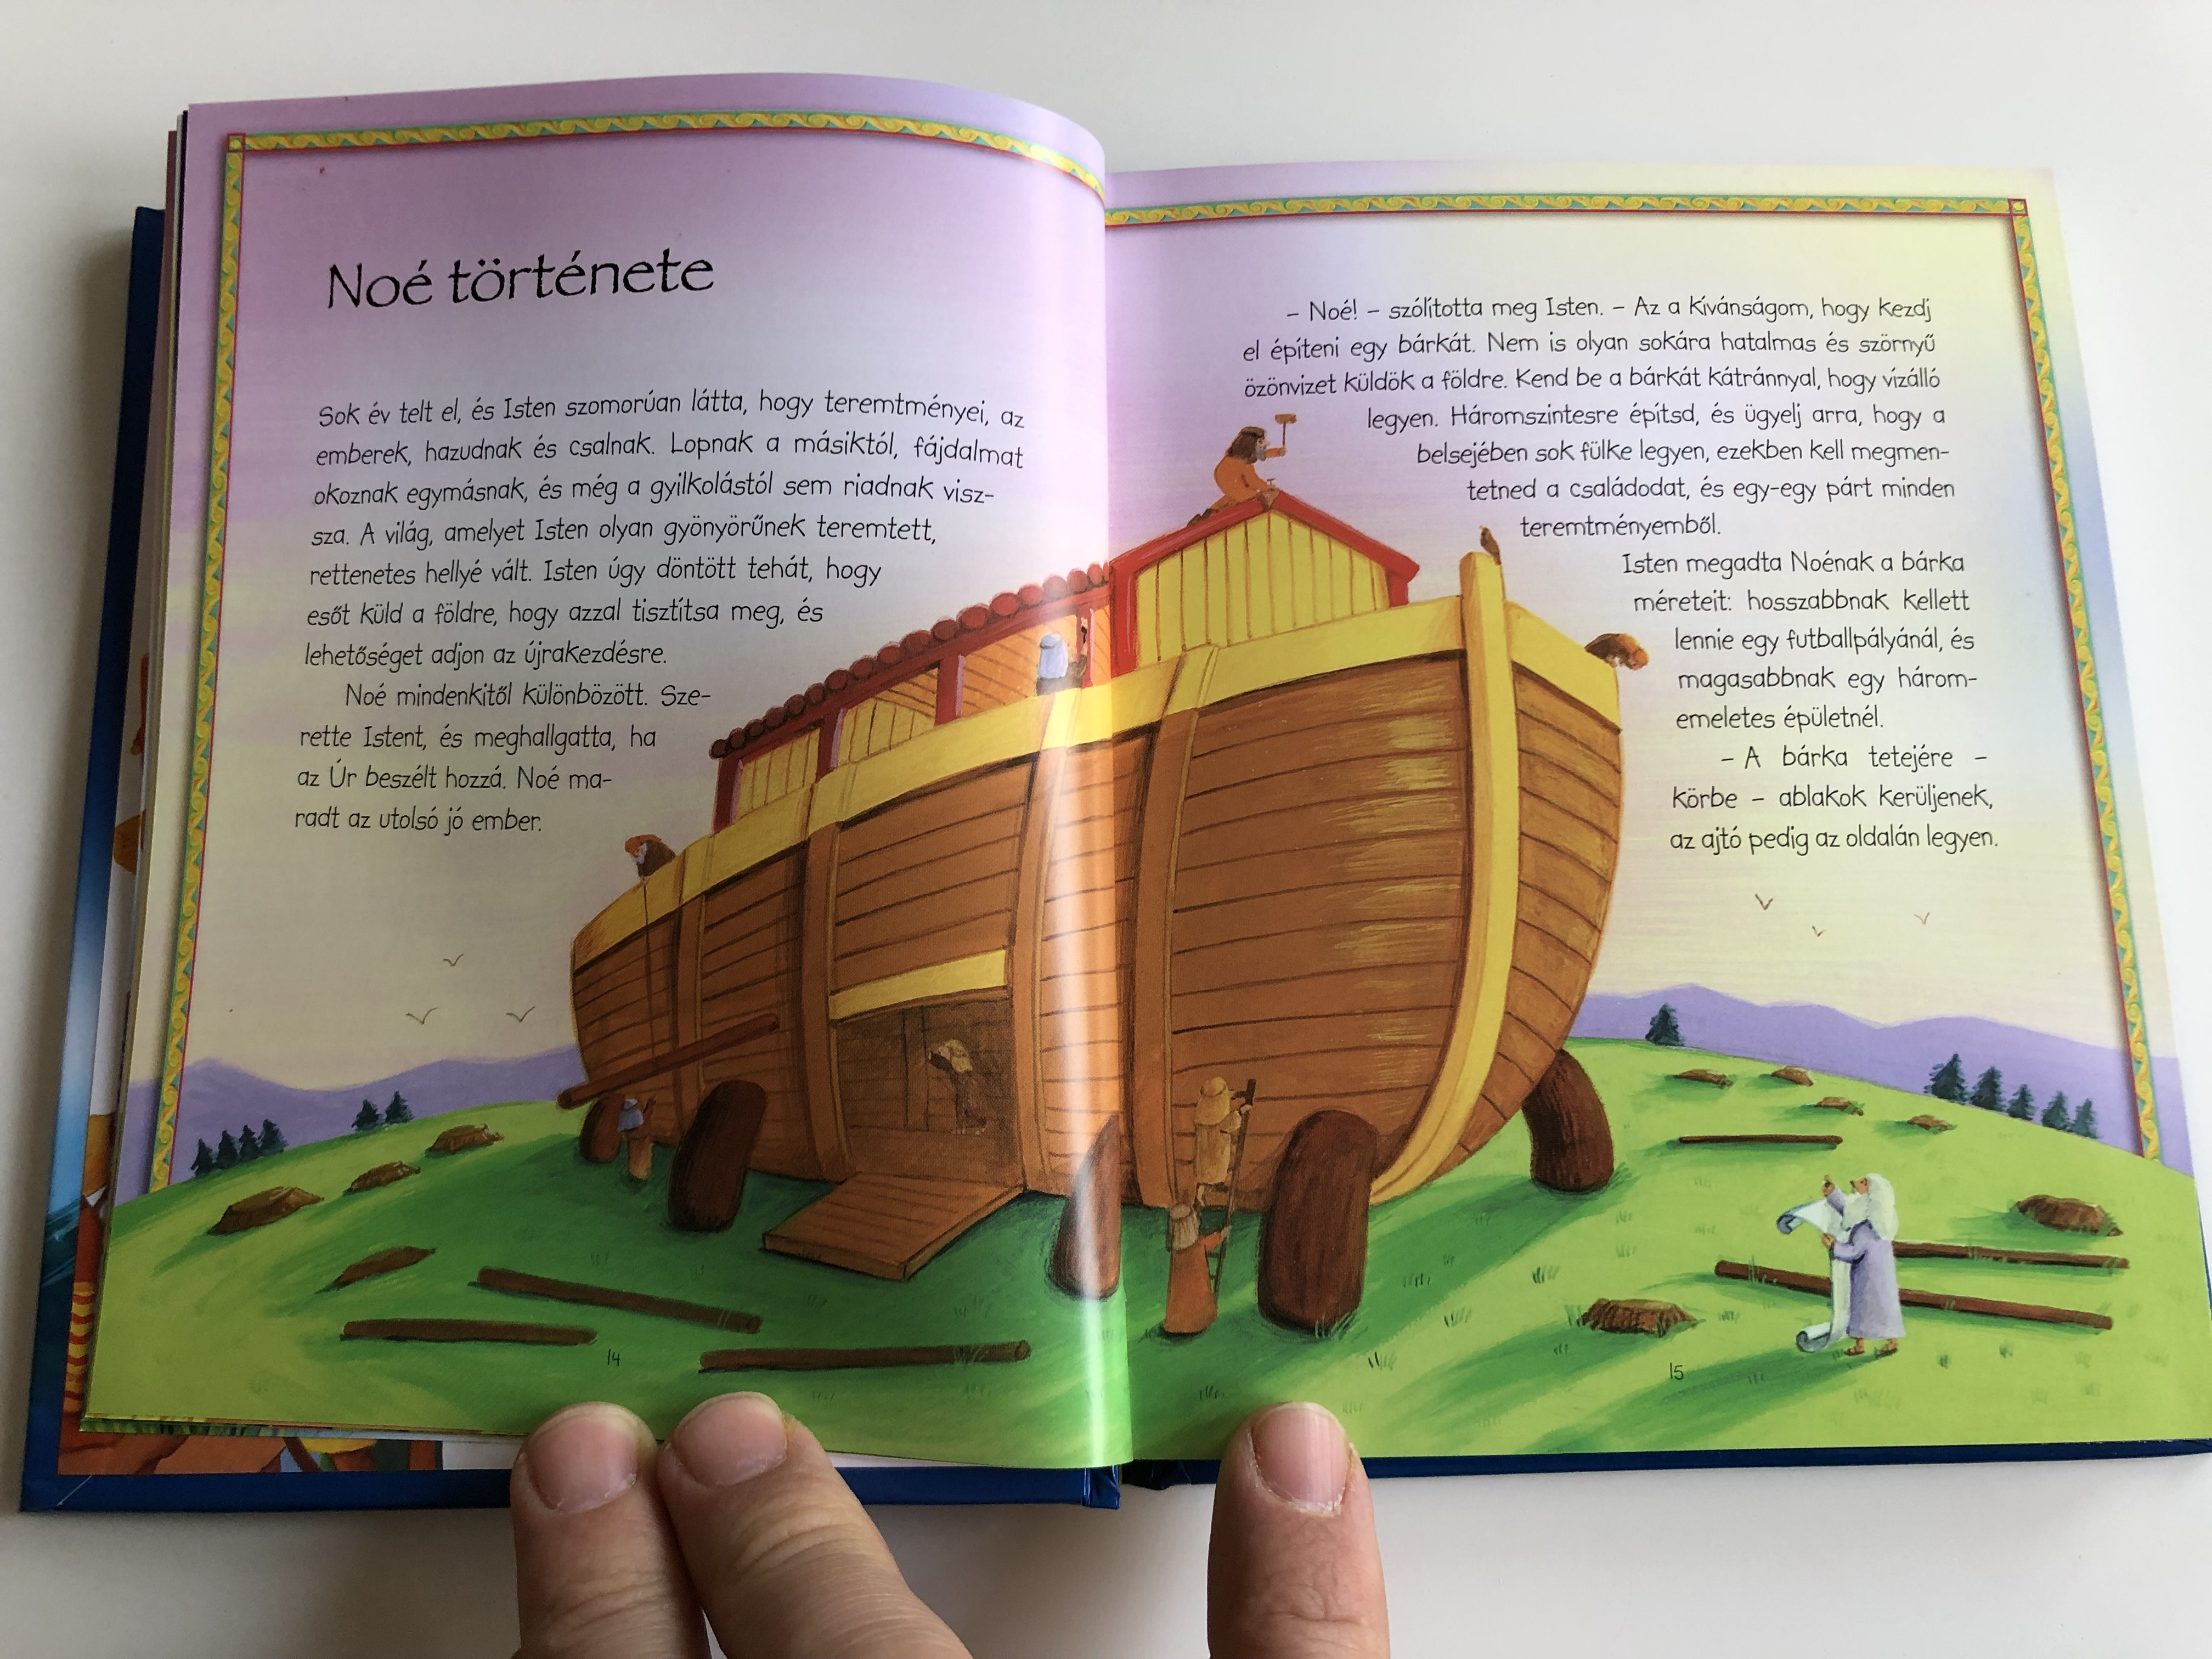 biblia-kicsiknek-by-bethan-james-and-estelle-corke-hungarian-translation-of-my-bible-story-book-hardcover-2013-napraforg-kiad-4-.jpg